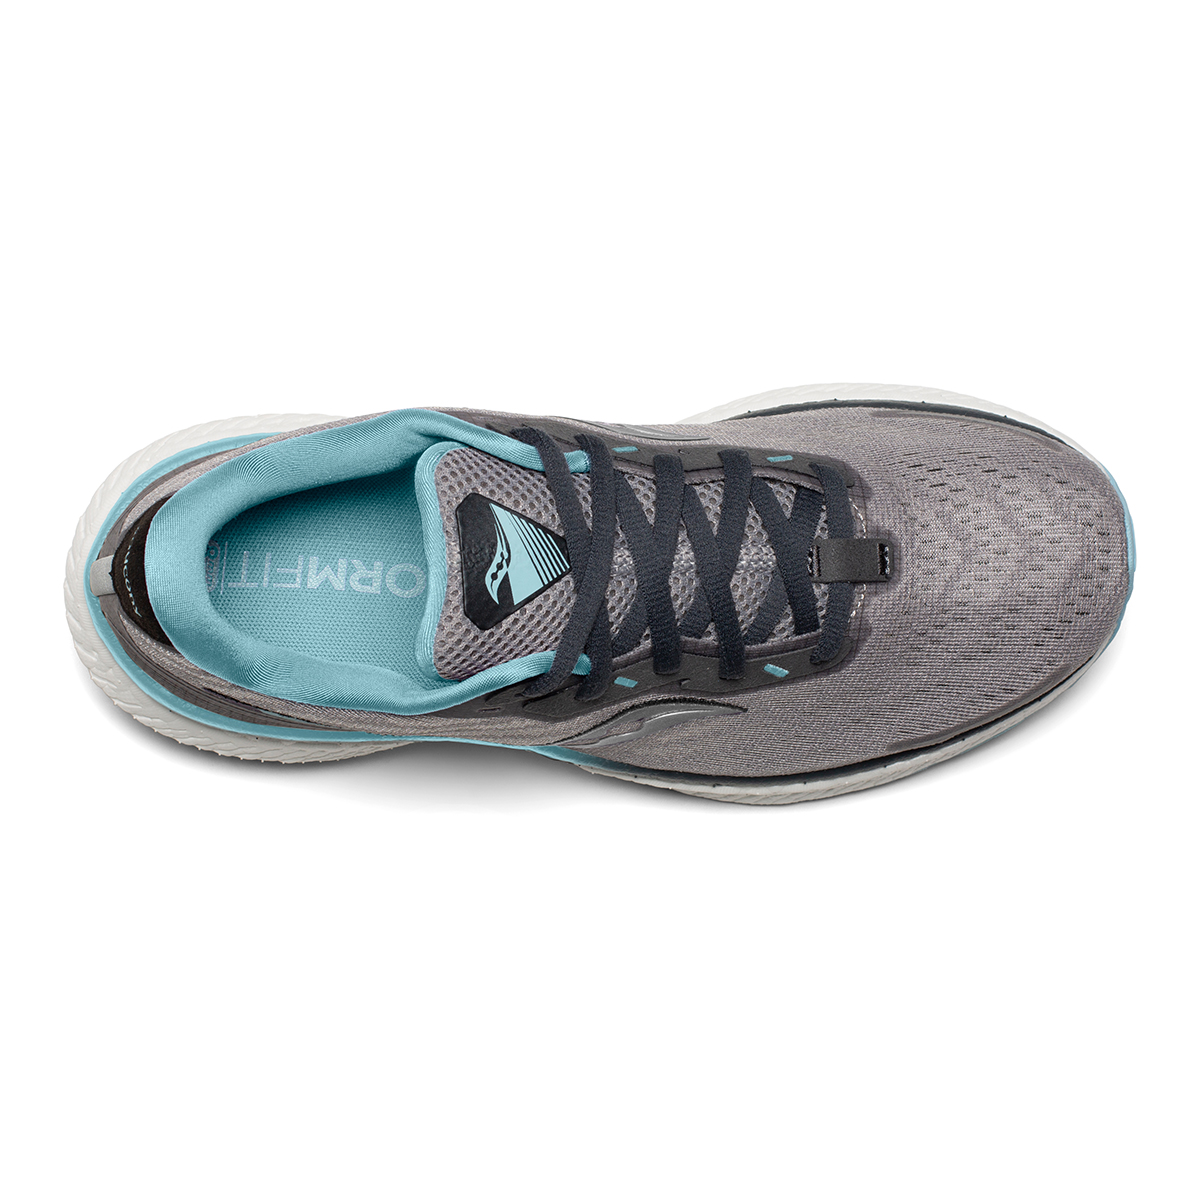 Women's Saucony Triumph 19 Running Shoe - Color: Alloy/Concord - Size: 6 - Width: Regular, Alloy/Concord, large, image 3